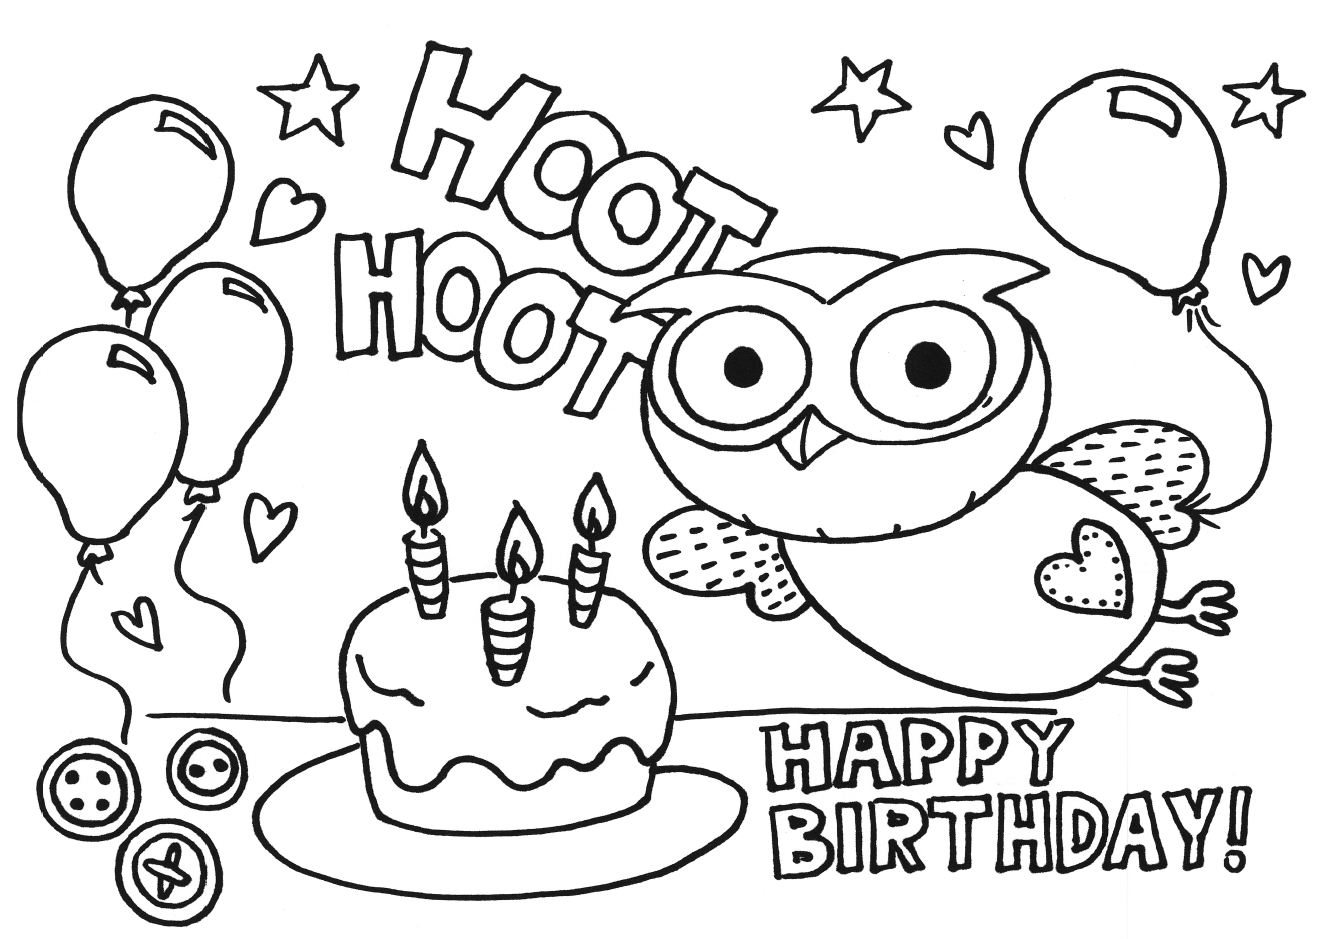 5 Images of Happy Birthday Coloring Printable